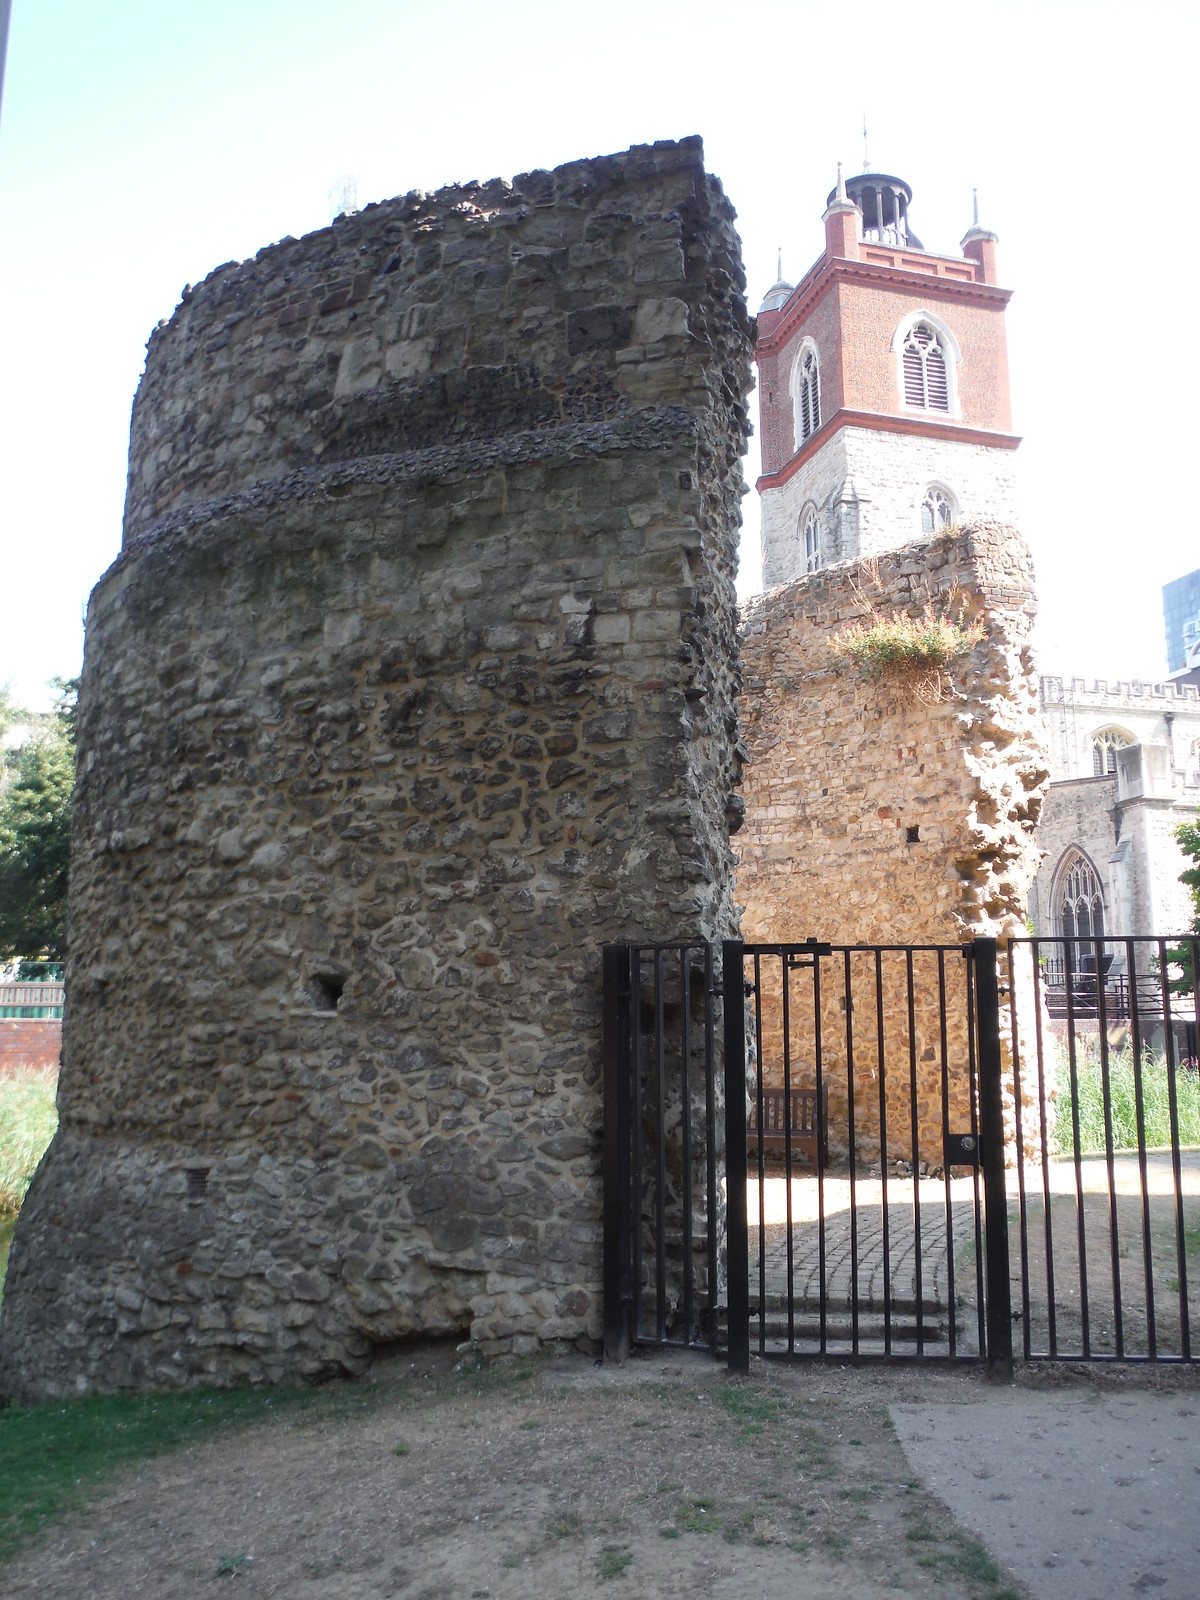 Bastion 12 of the London Wall and St. Giles Cripplegate SWC Short Walk 47 - The London Wall